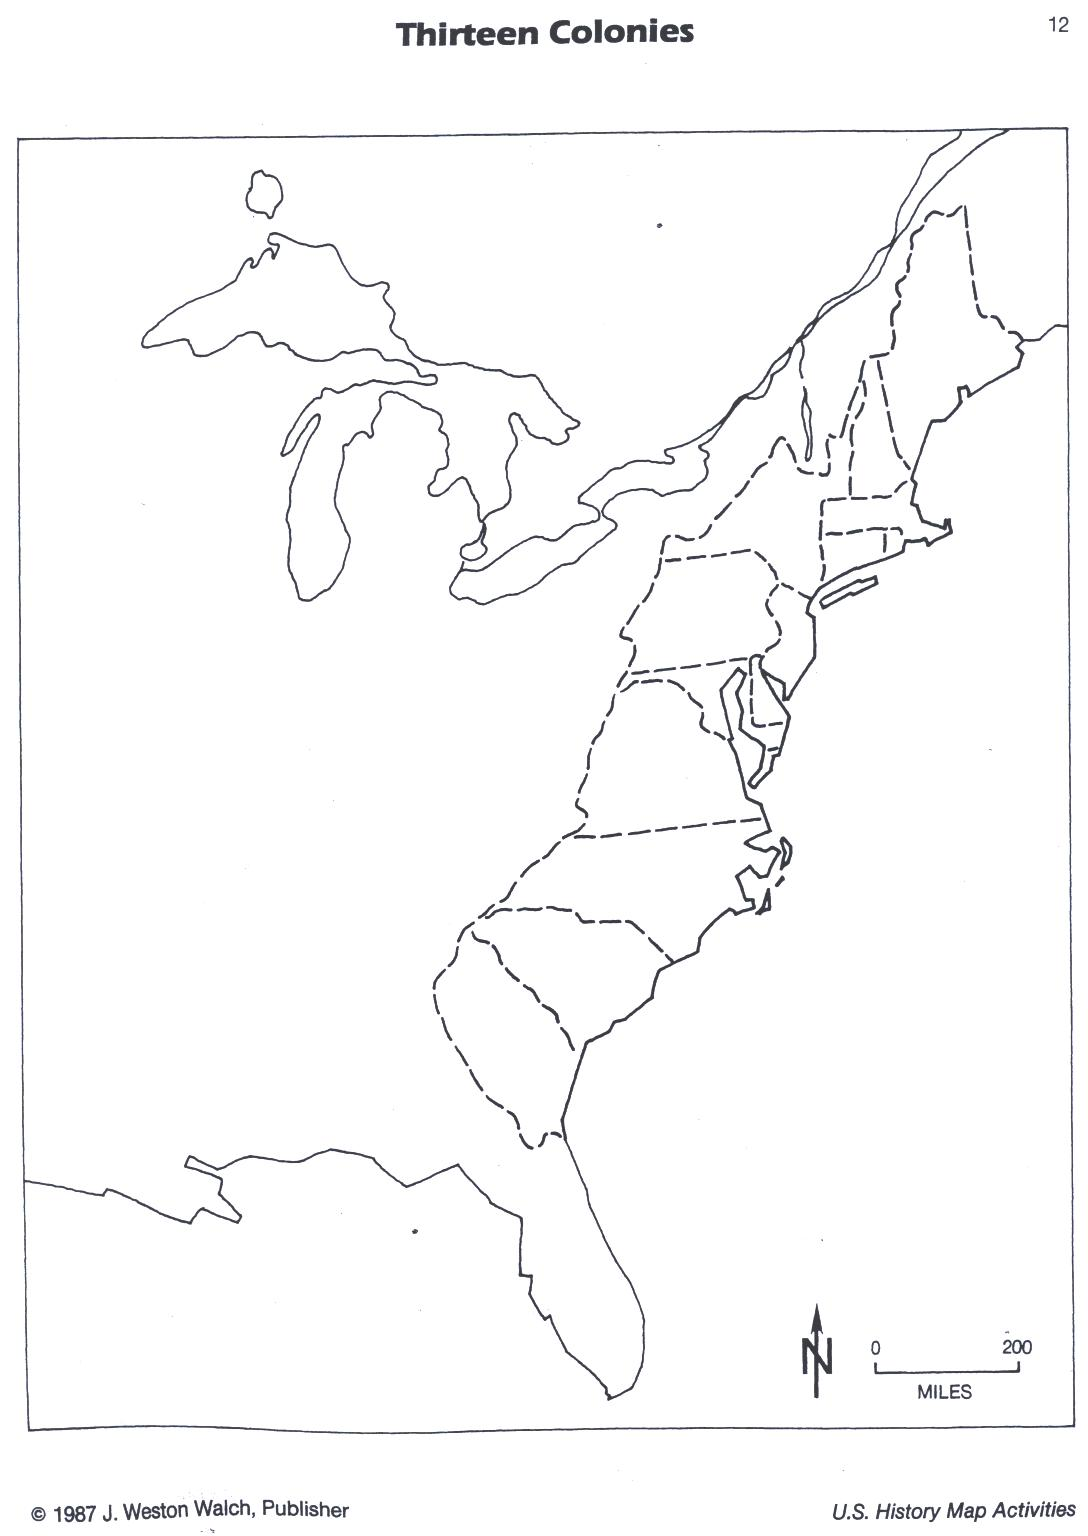 American History Mrs Allen Name 13 Colonies Map